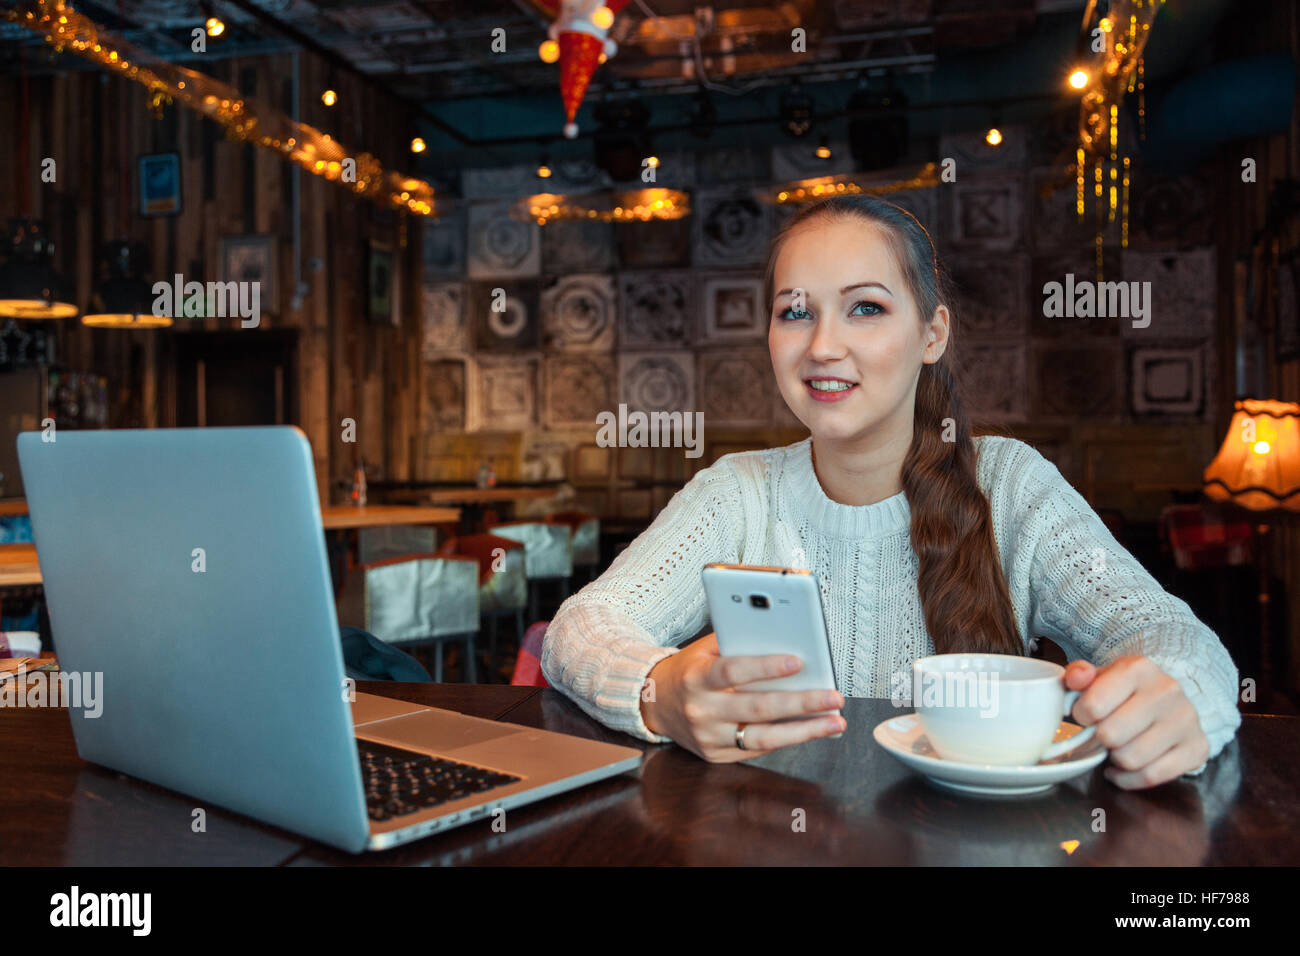 Woman working on laptop - Stock Image